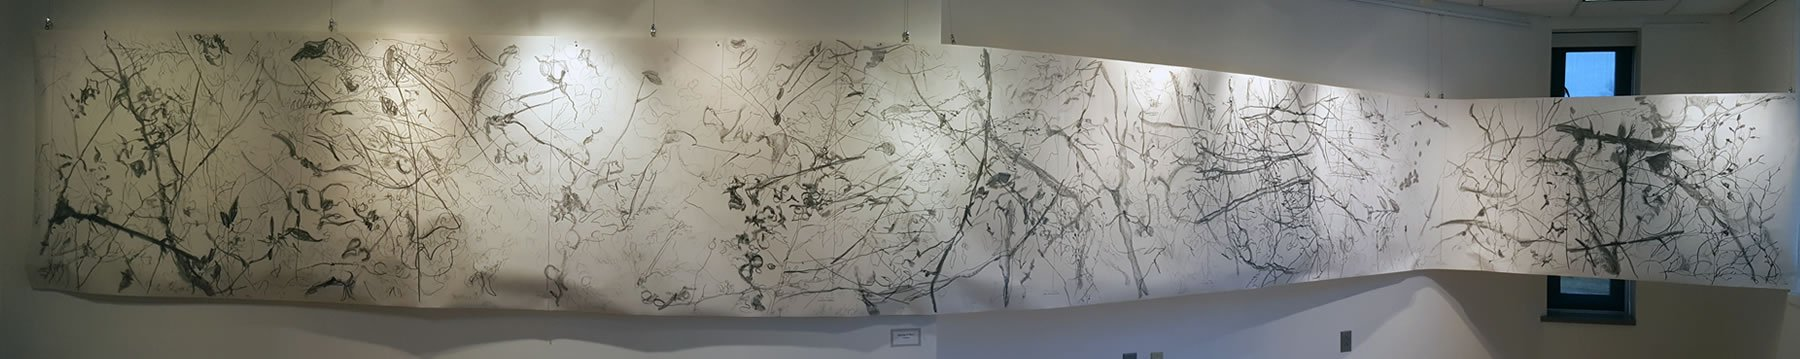 Drawing in Place: Recent Works by Eric Kniss in the Fine Arts Gallery